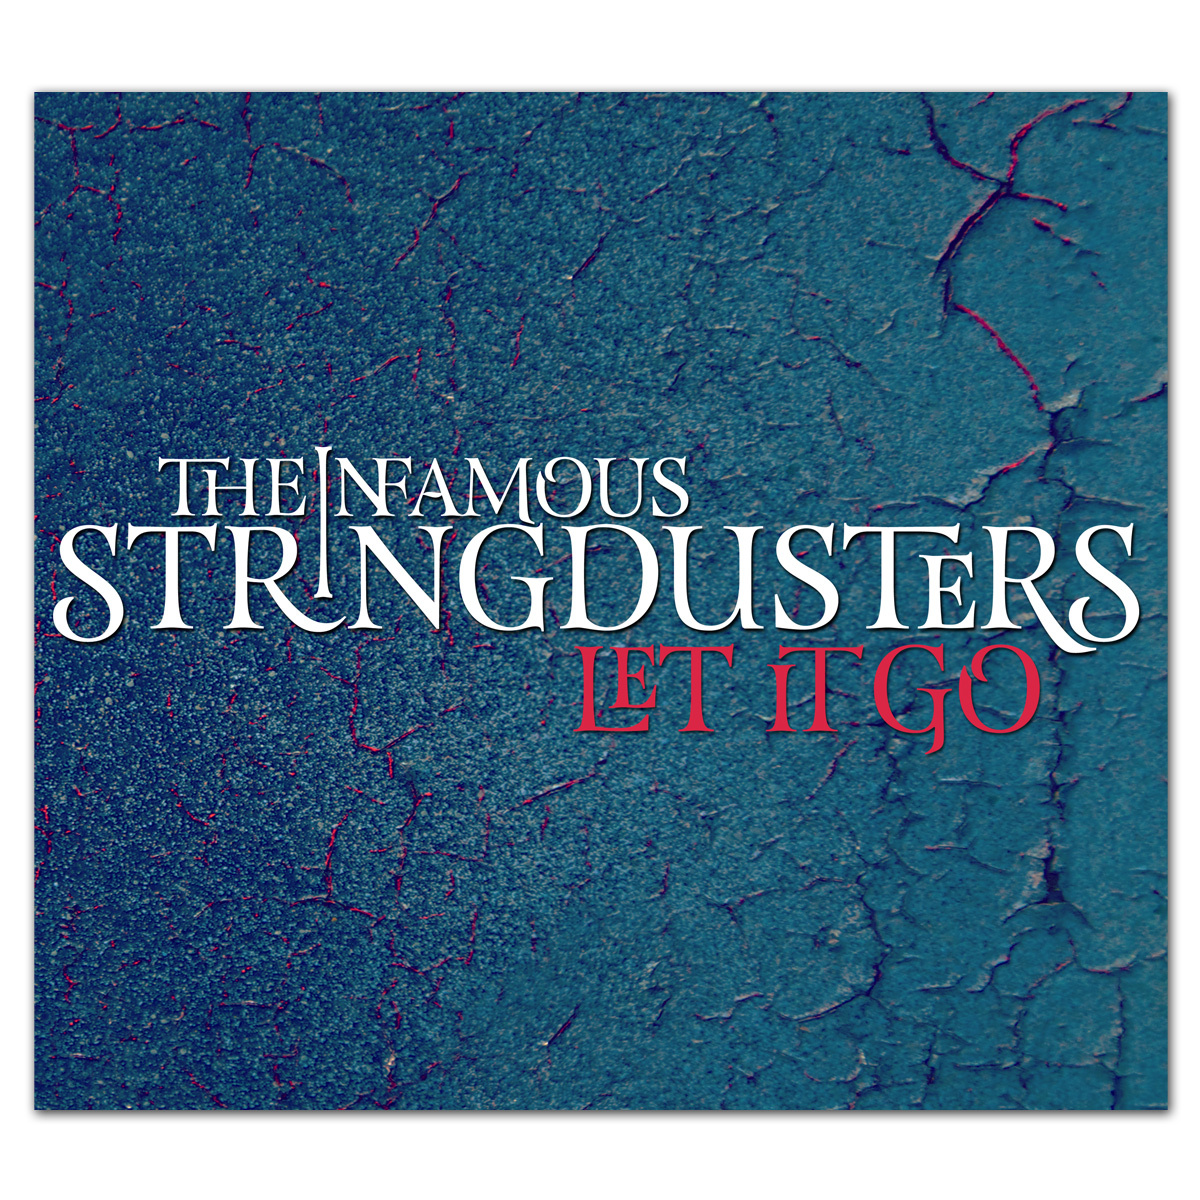 The Stringdusters - Let It Go CD